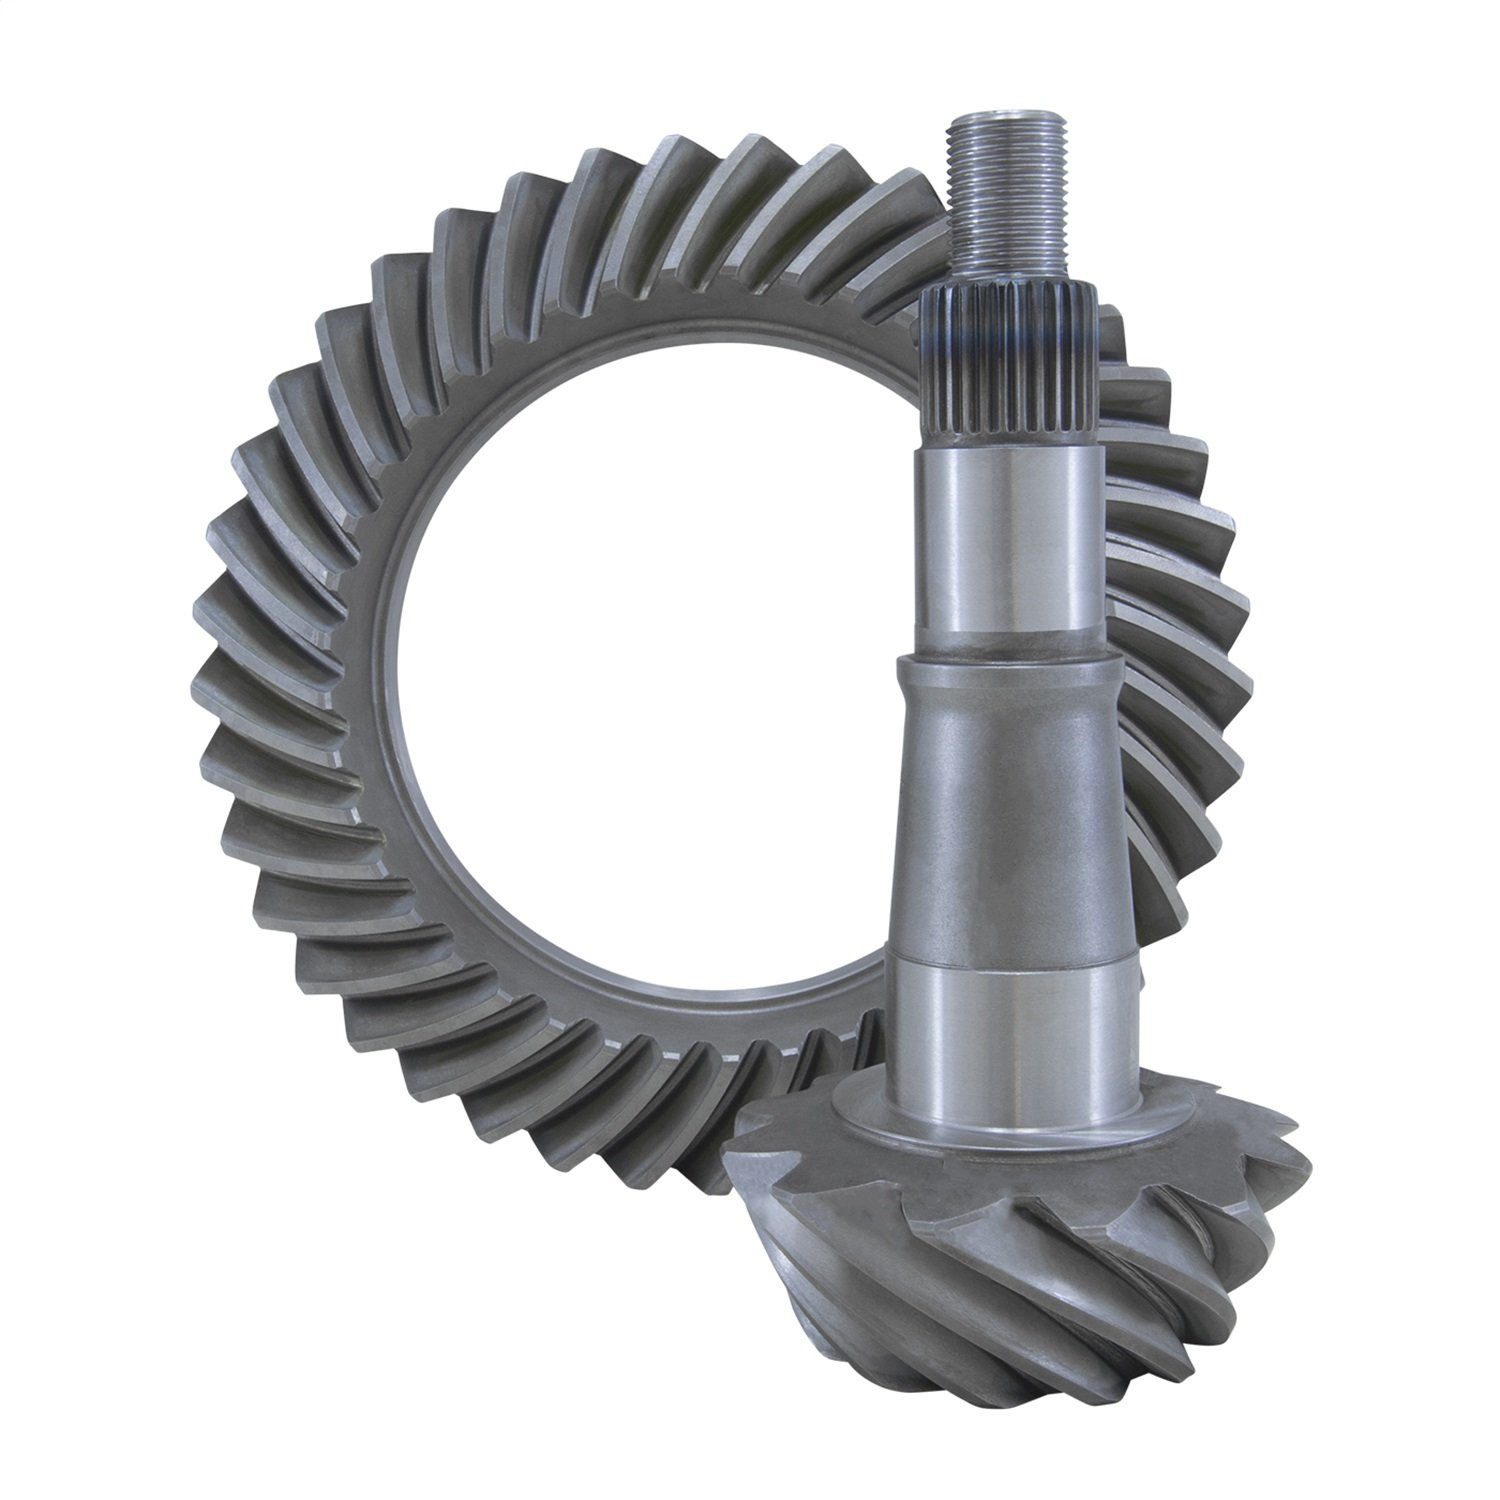 USA Standard Gear (ZG GM9.5-411) Ring & Pinion Gear Set for GM 9.5 Differential